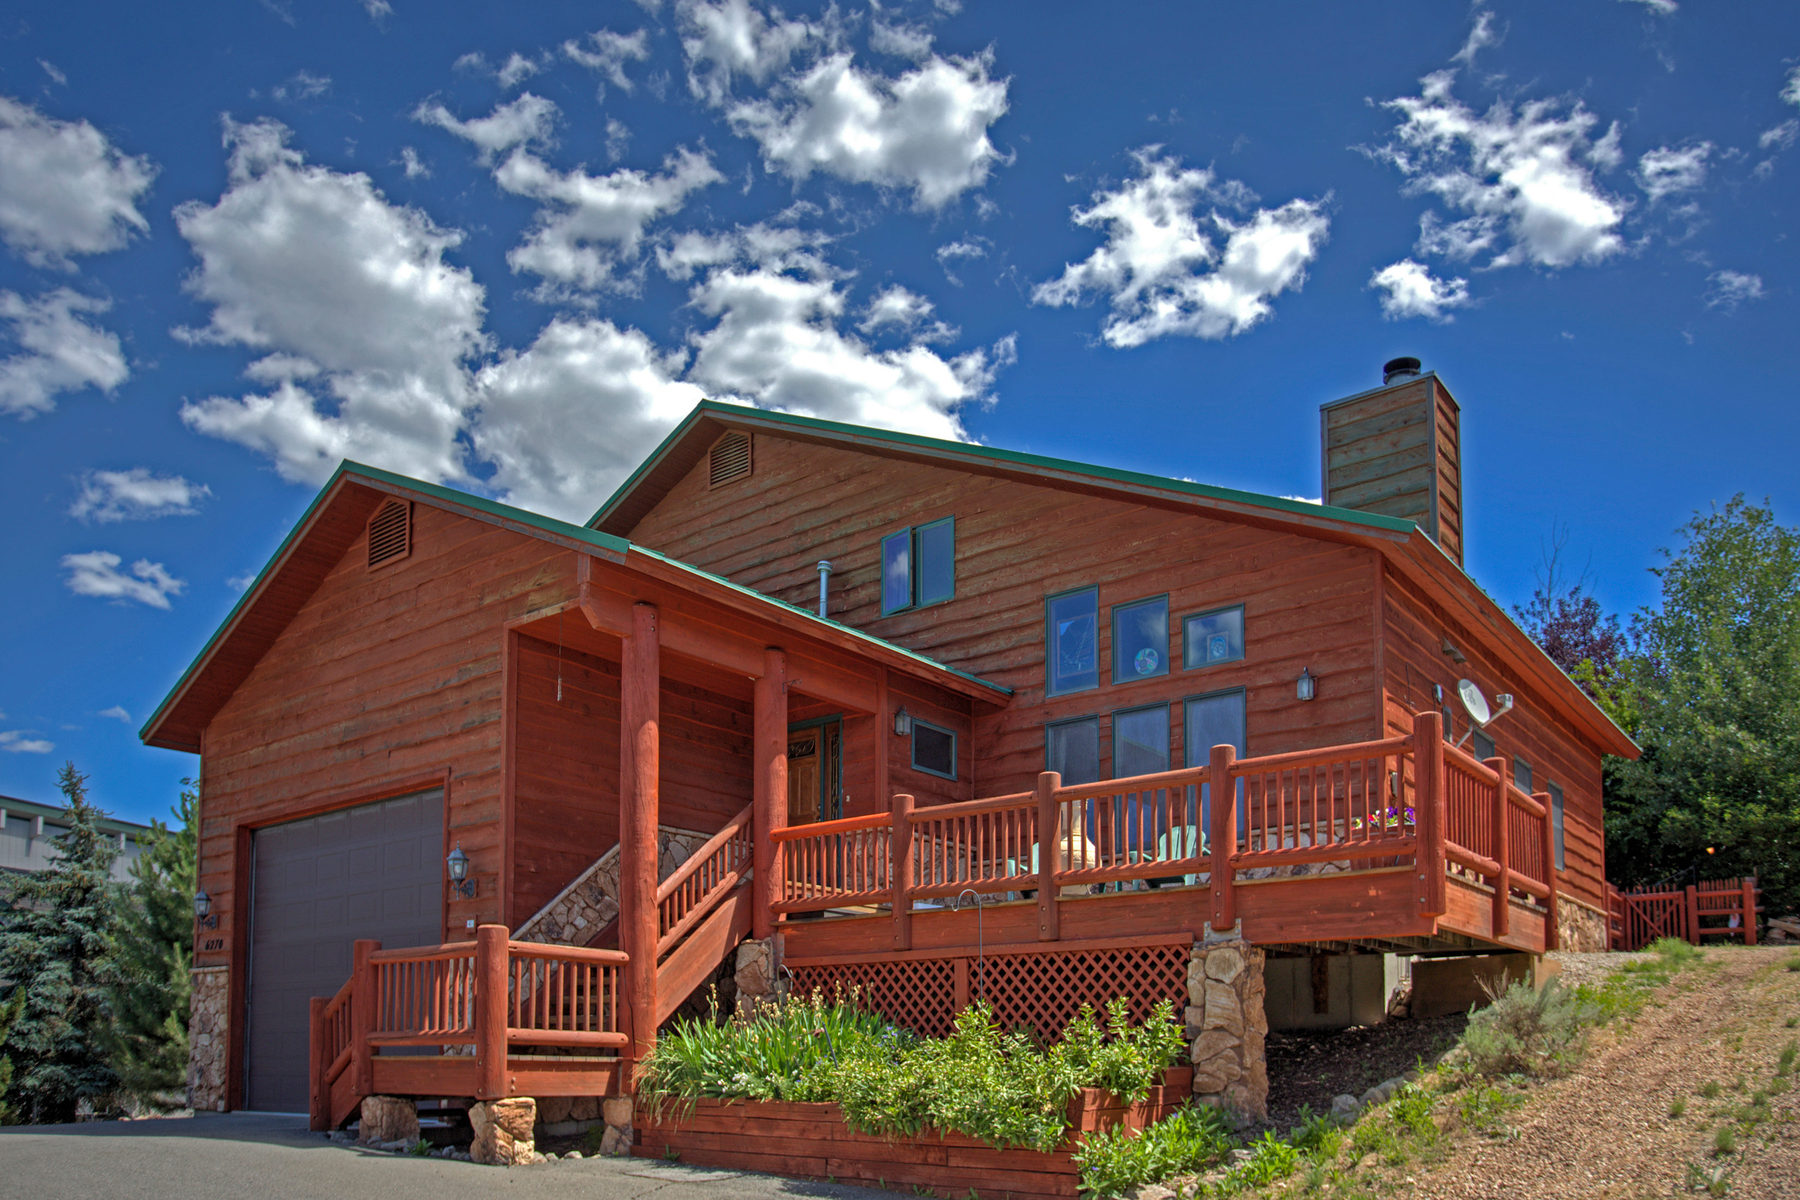 Single Family Home for Sale at Mountain Style Home with Great Views 6270 Mountain View Dr Park City, Utah 84098 United States